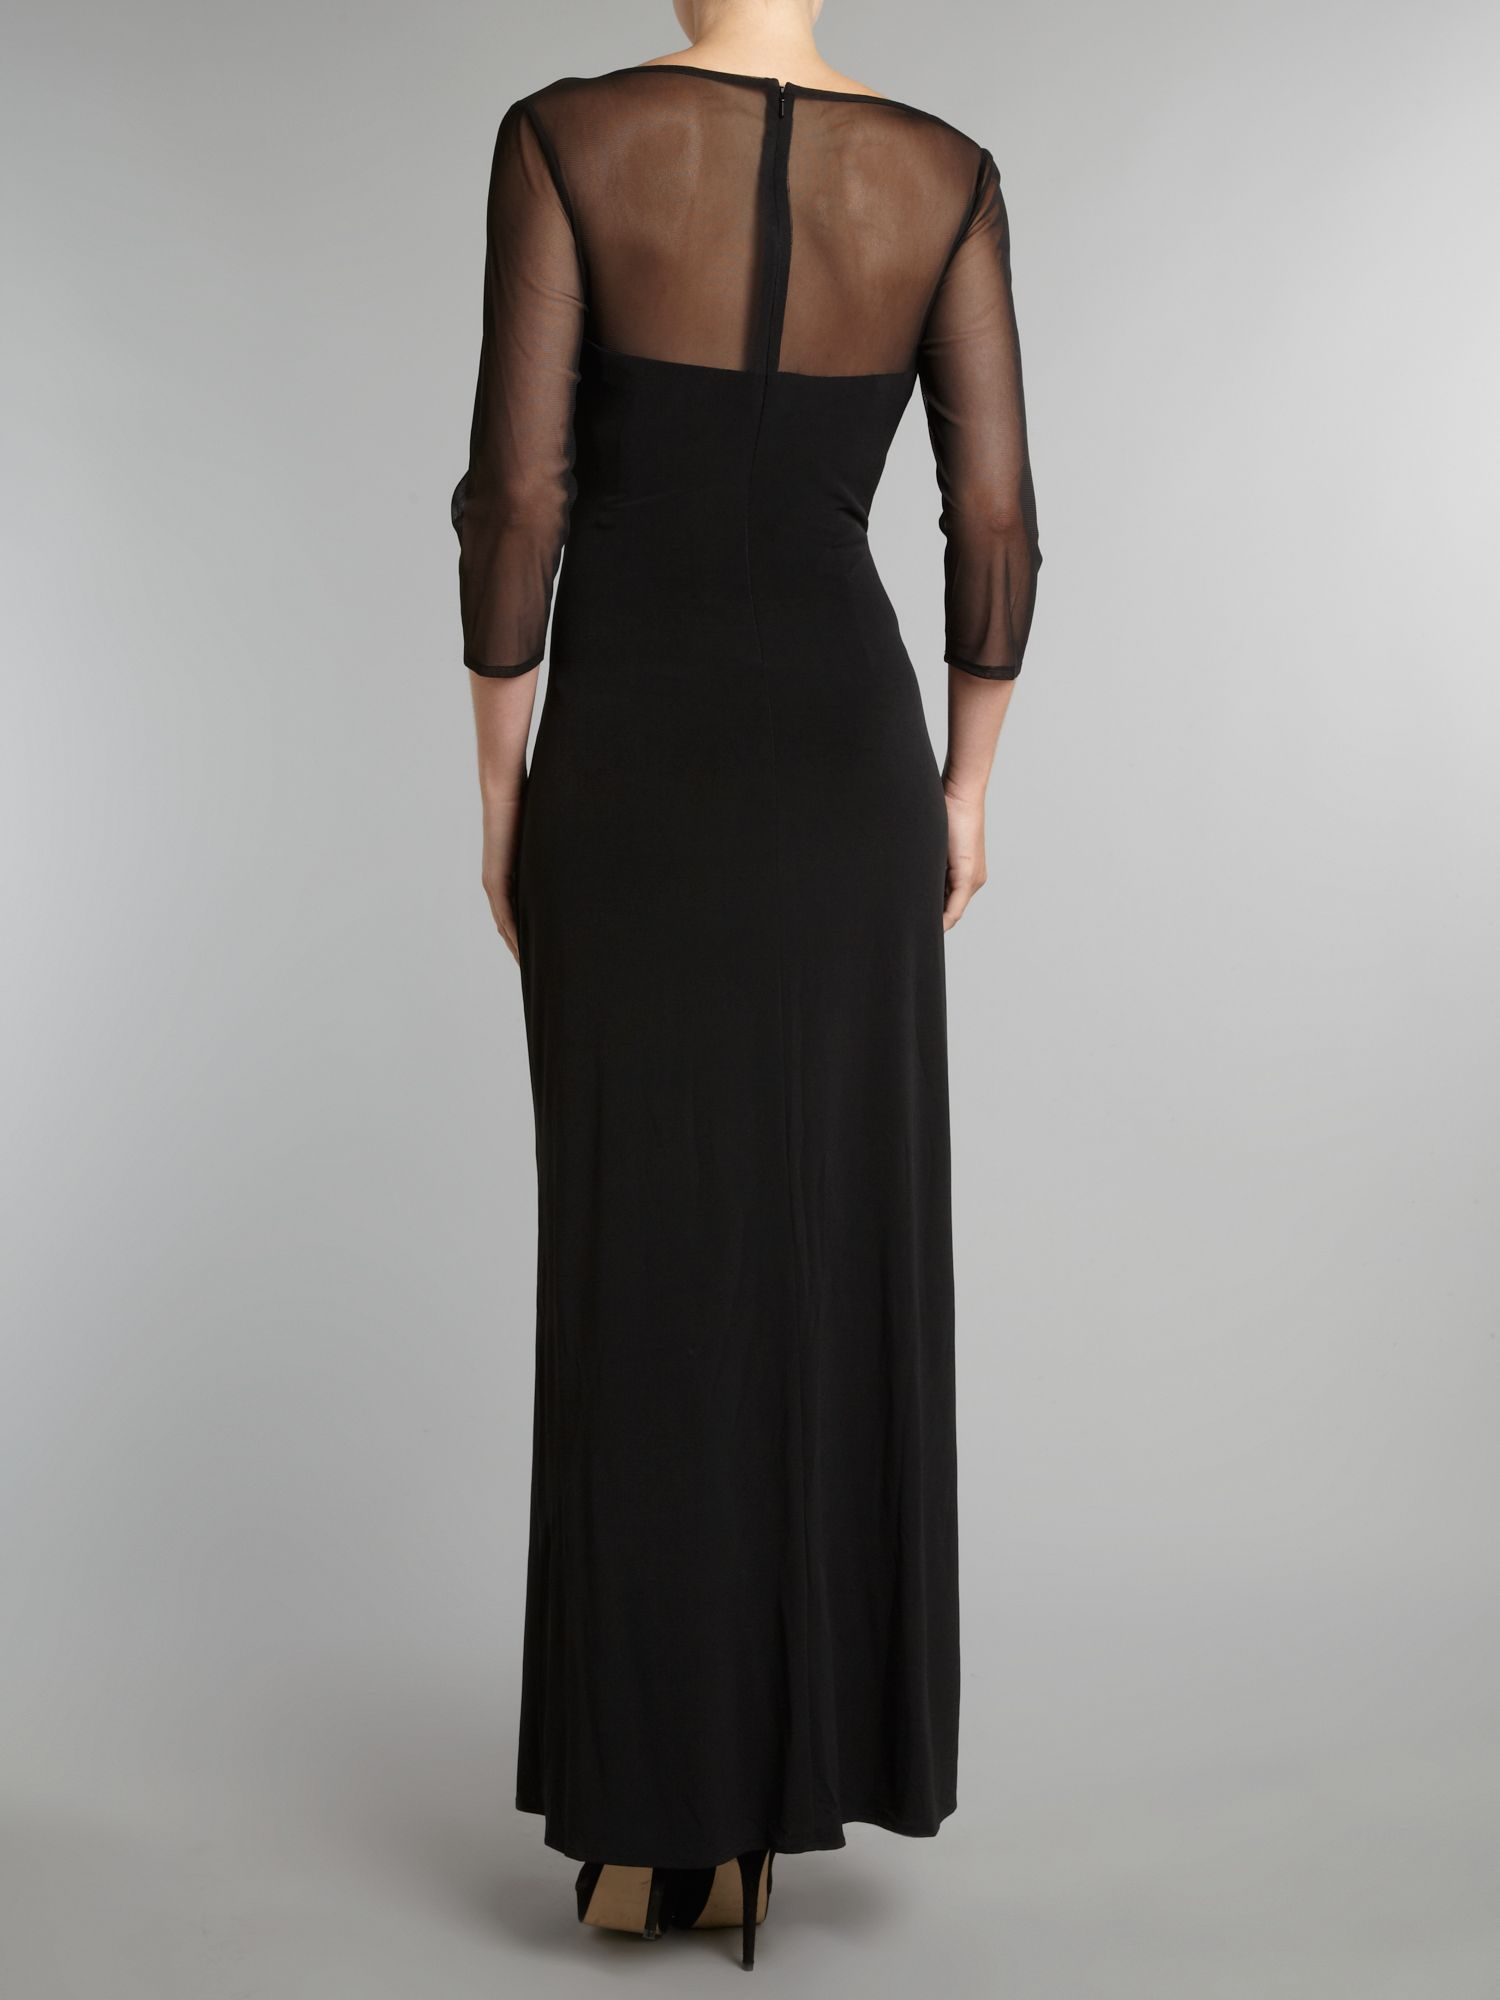 Js collections Sleeveless Evening Dress in Black - Lyst